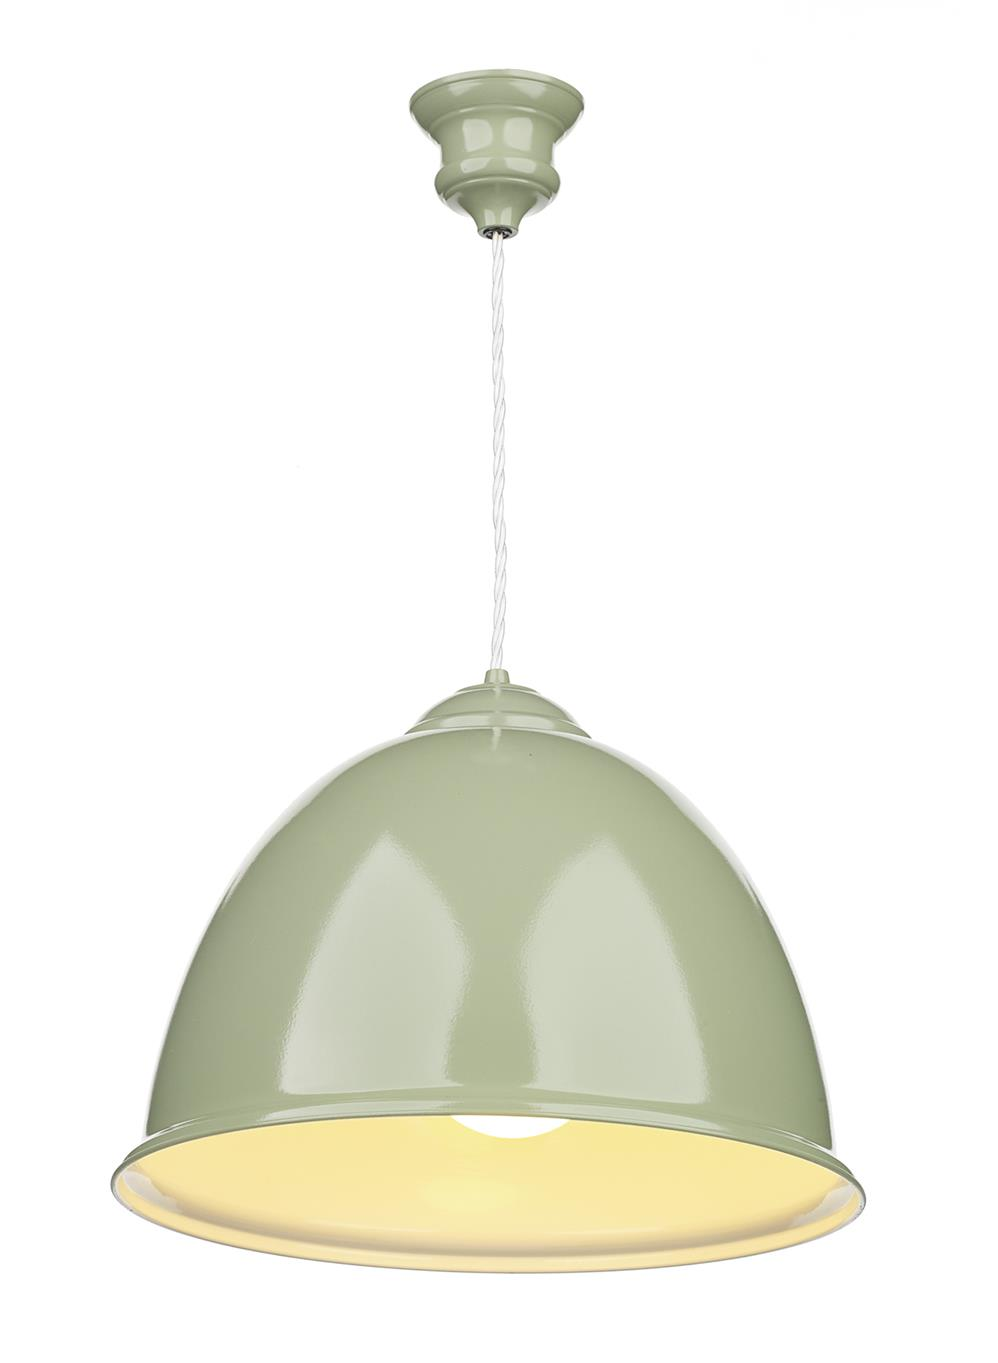 David Hunt Lighting EUS0174 Euston 1 Light Pendant in Olive Green Semi Gloss with White Inner